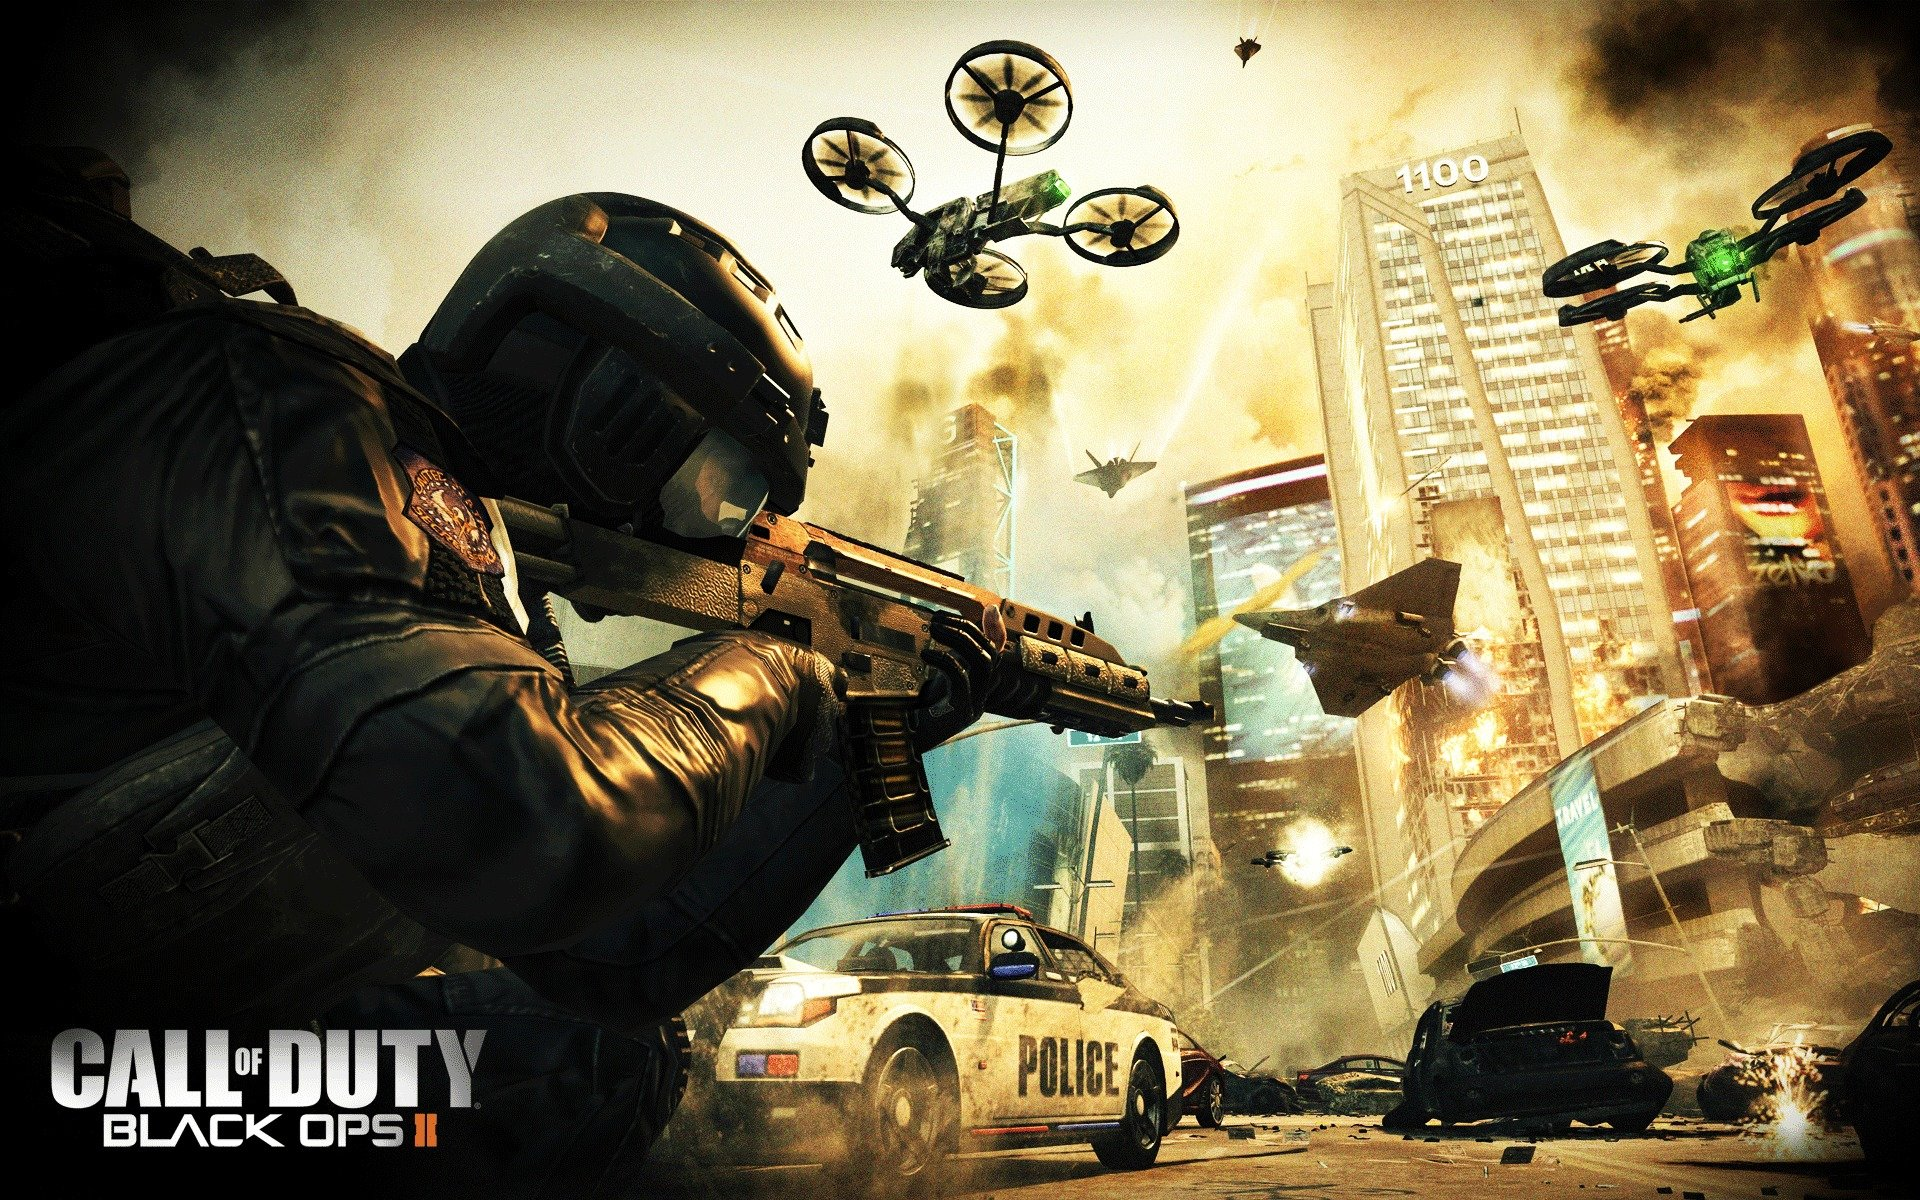 7. Call of Duty: Black Ops 2